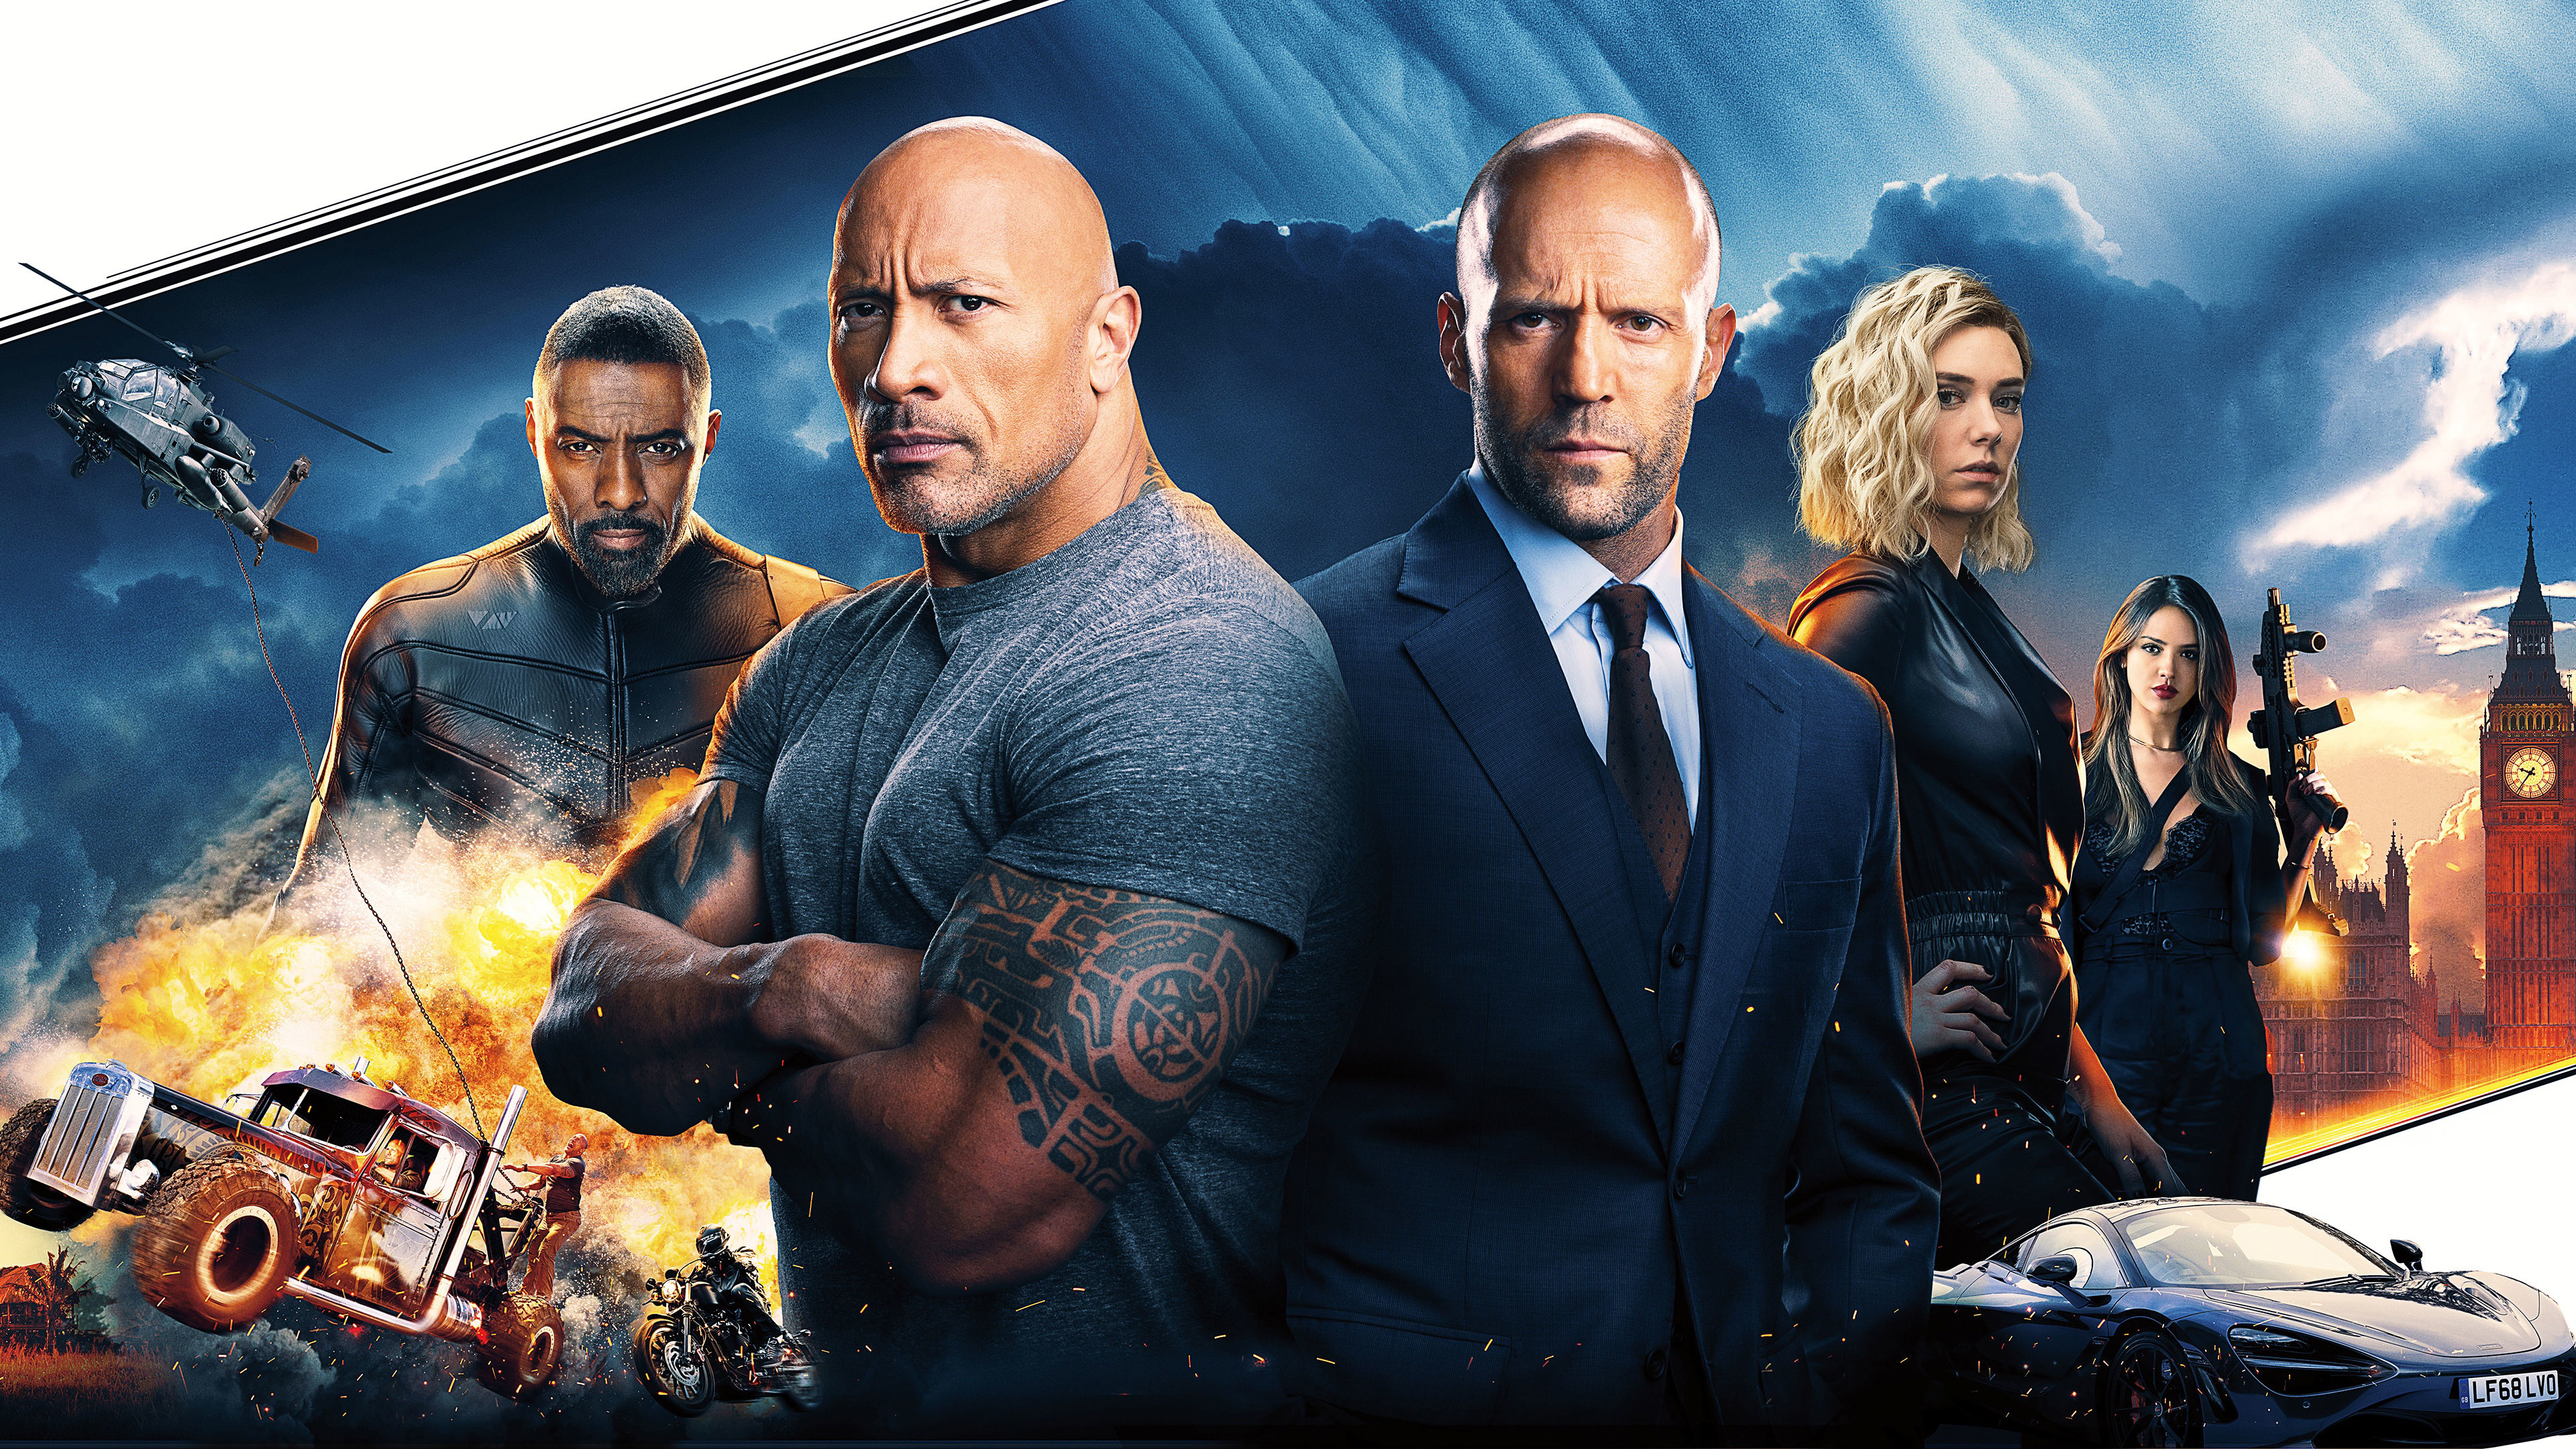 2019 hobbs and shaw 1565055699 - 2019 Hobbs And Shaw - movies wallpapers, jason statham wallpapers, hobbs and shaw wallpapers, hd-wallpapers, dwayne johnson wallpapers, 4k-wallpapers, 2019 movies wallpapers